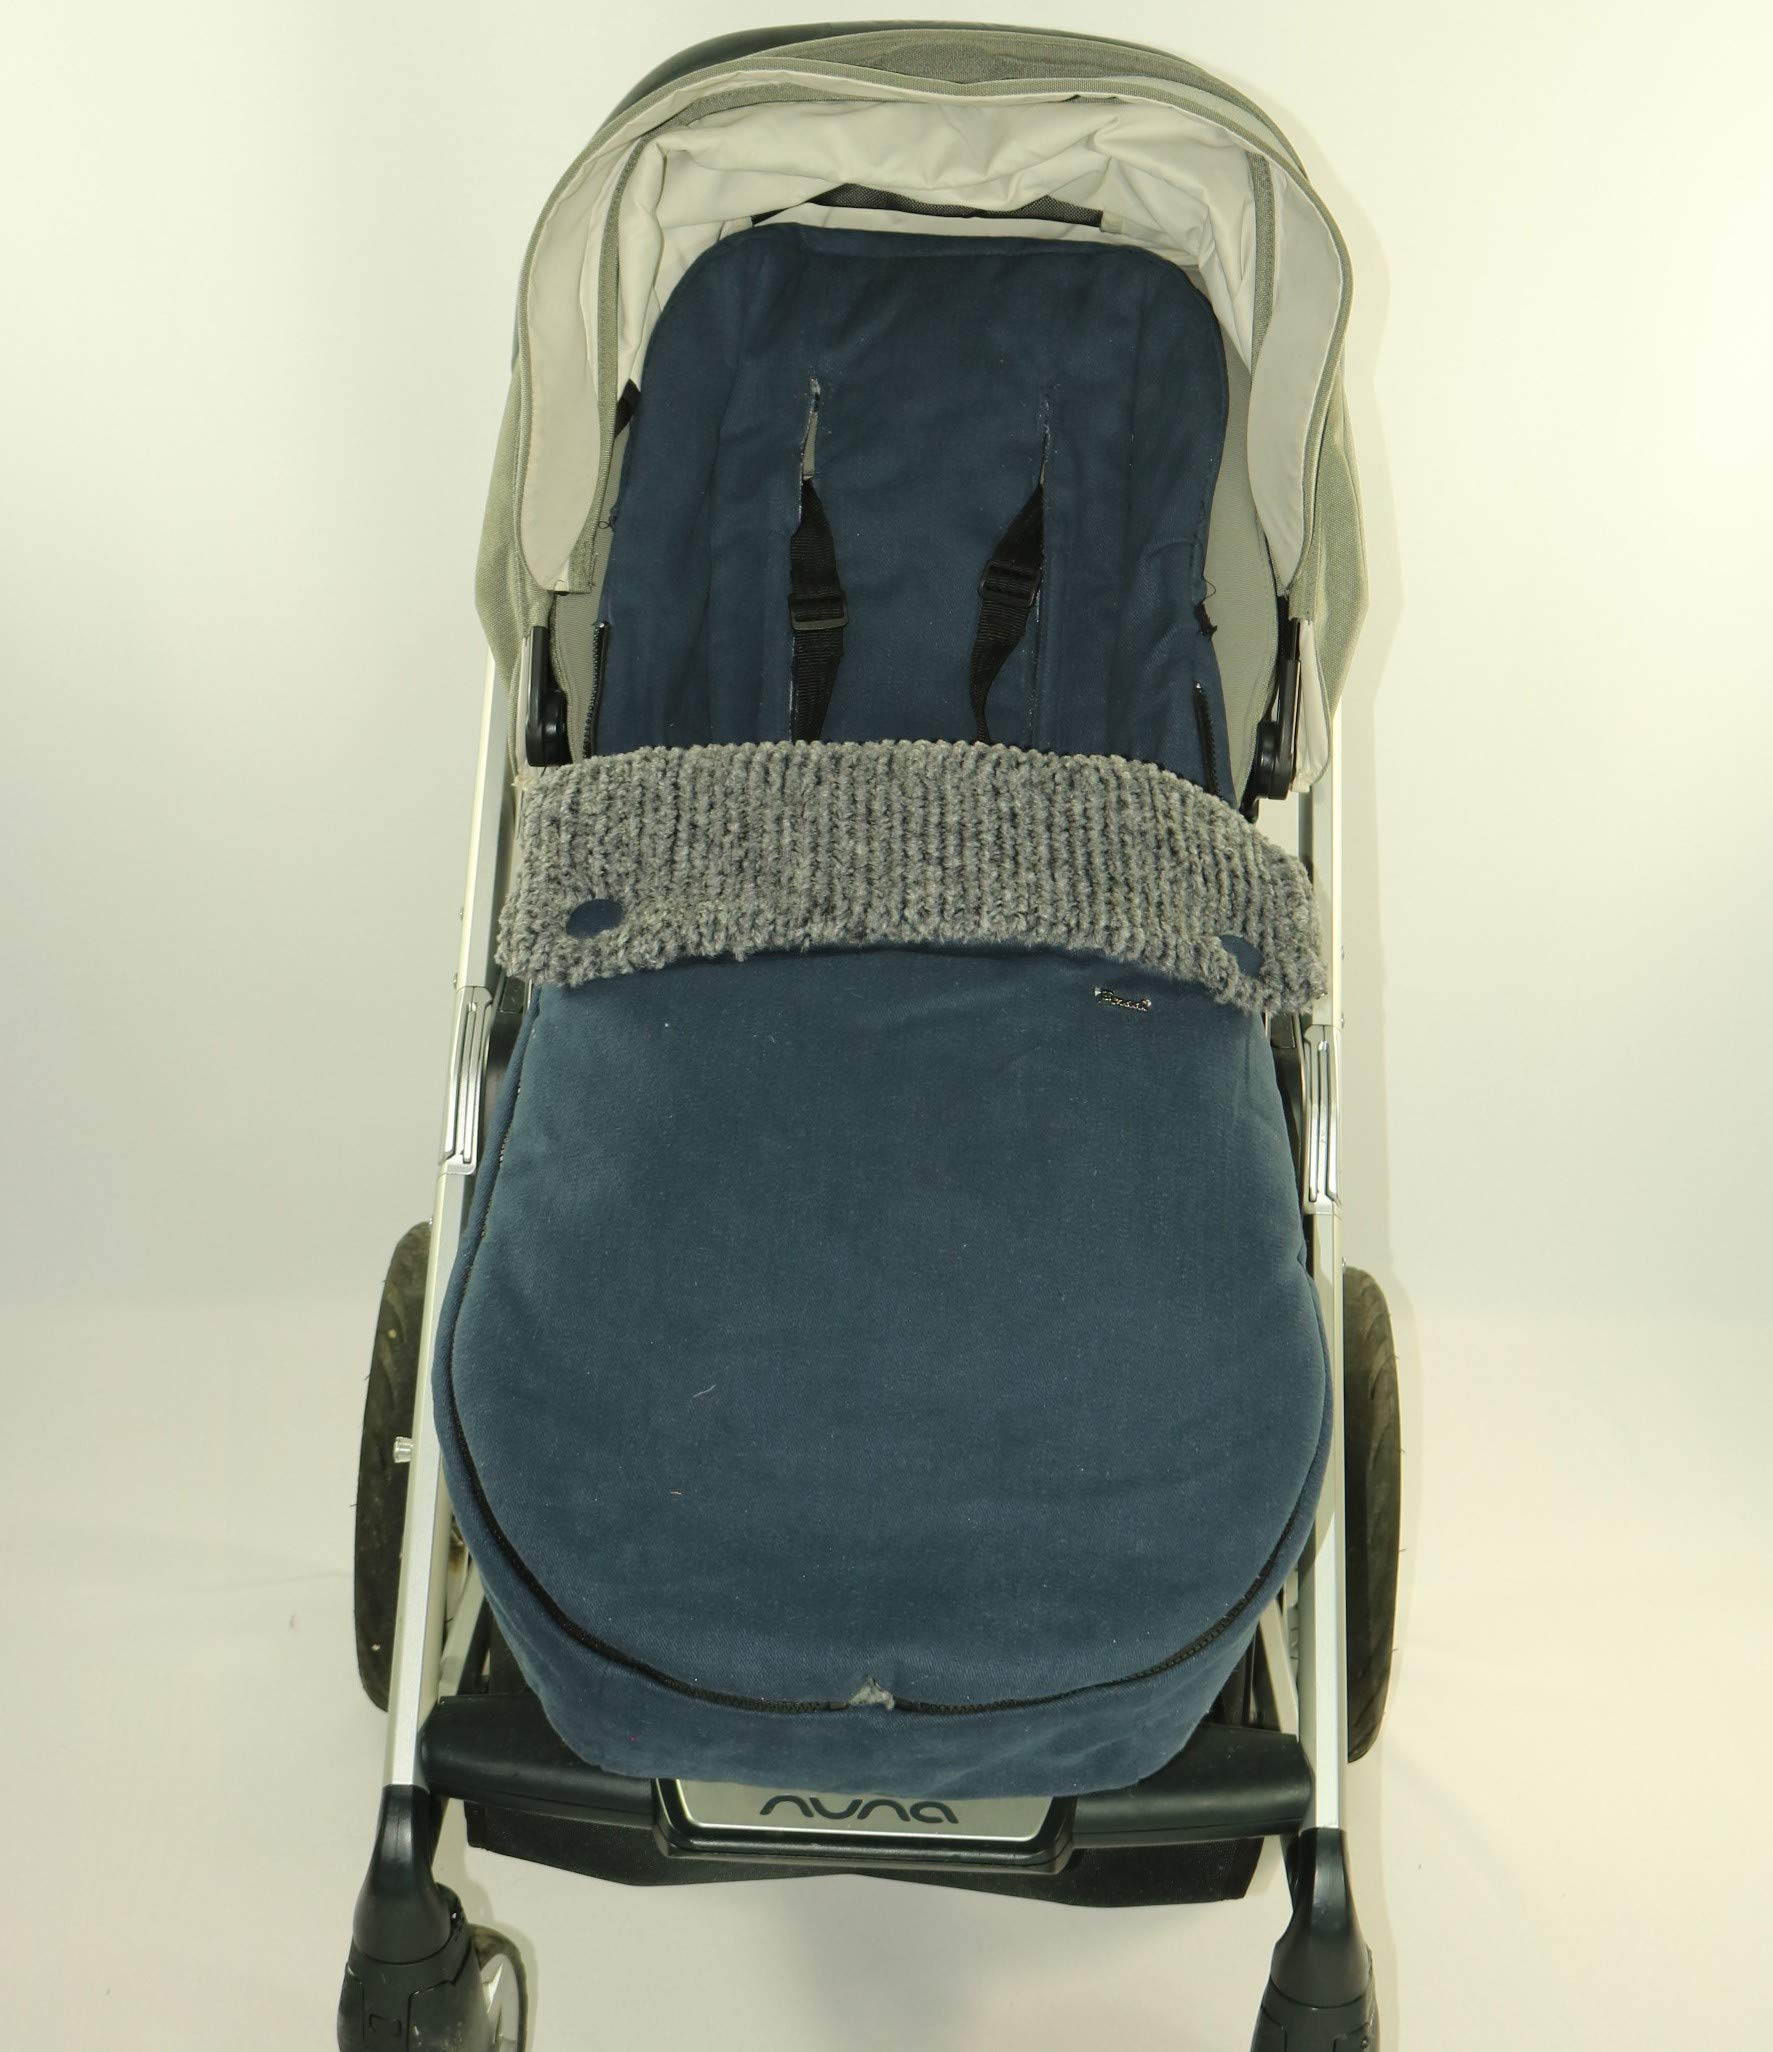 Foot muff, Warm Cozy Winter Stroller Toddler Baby Bunting (Blue)